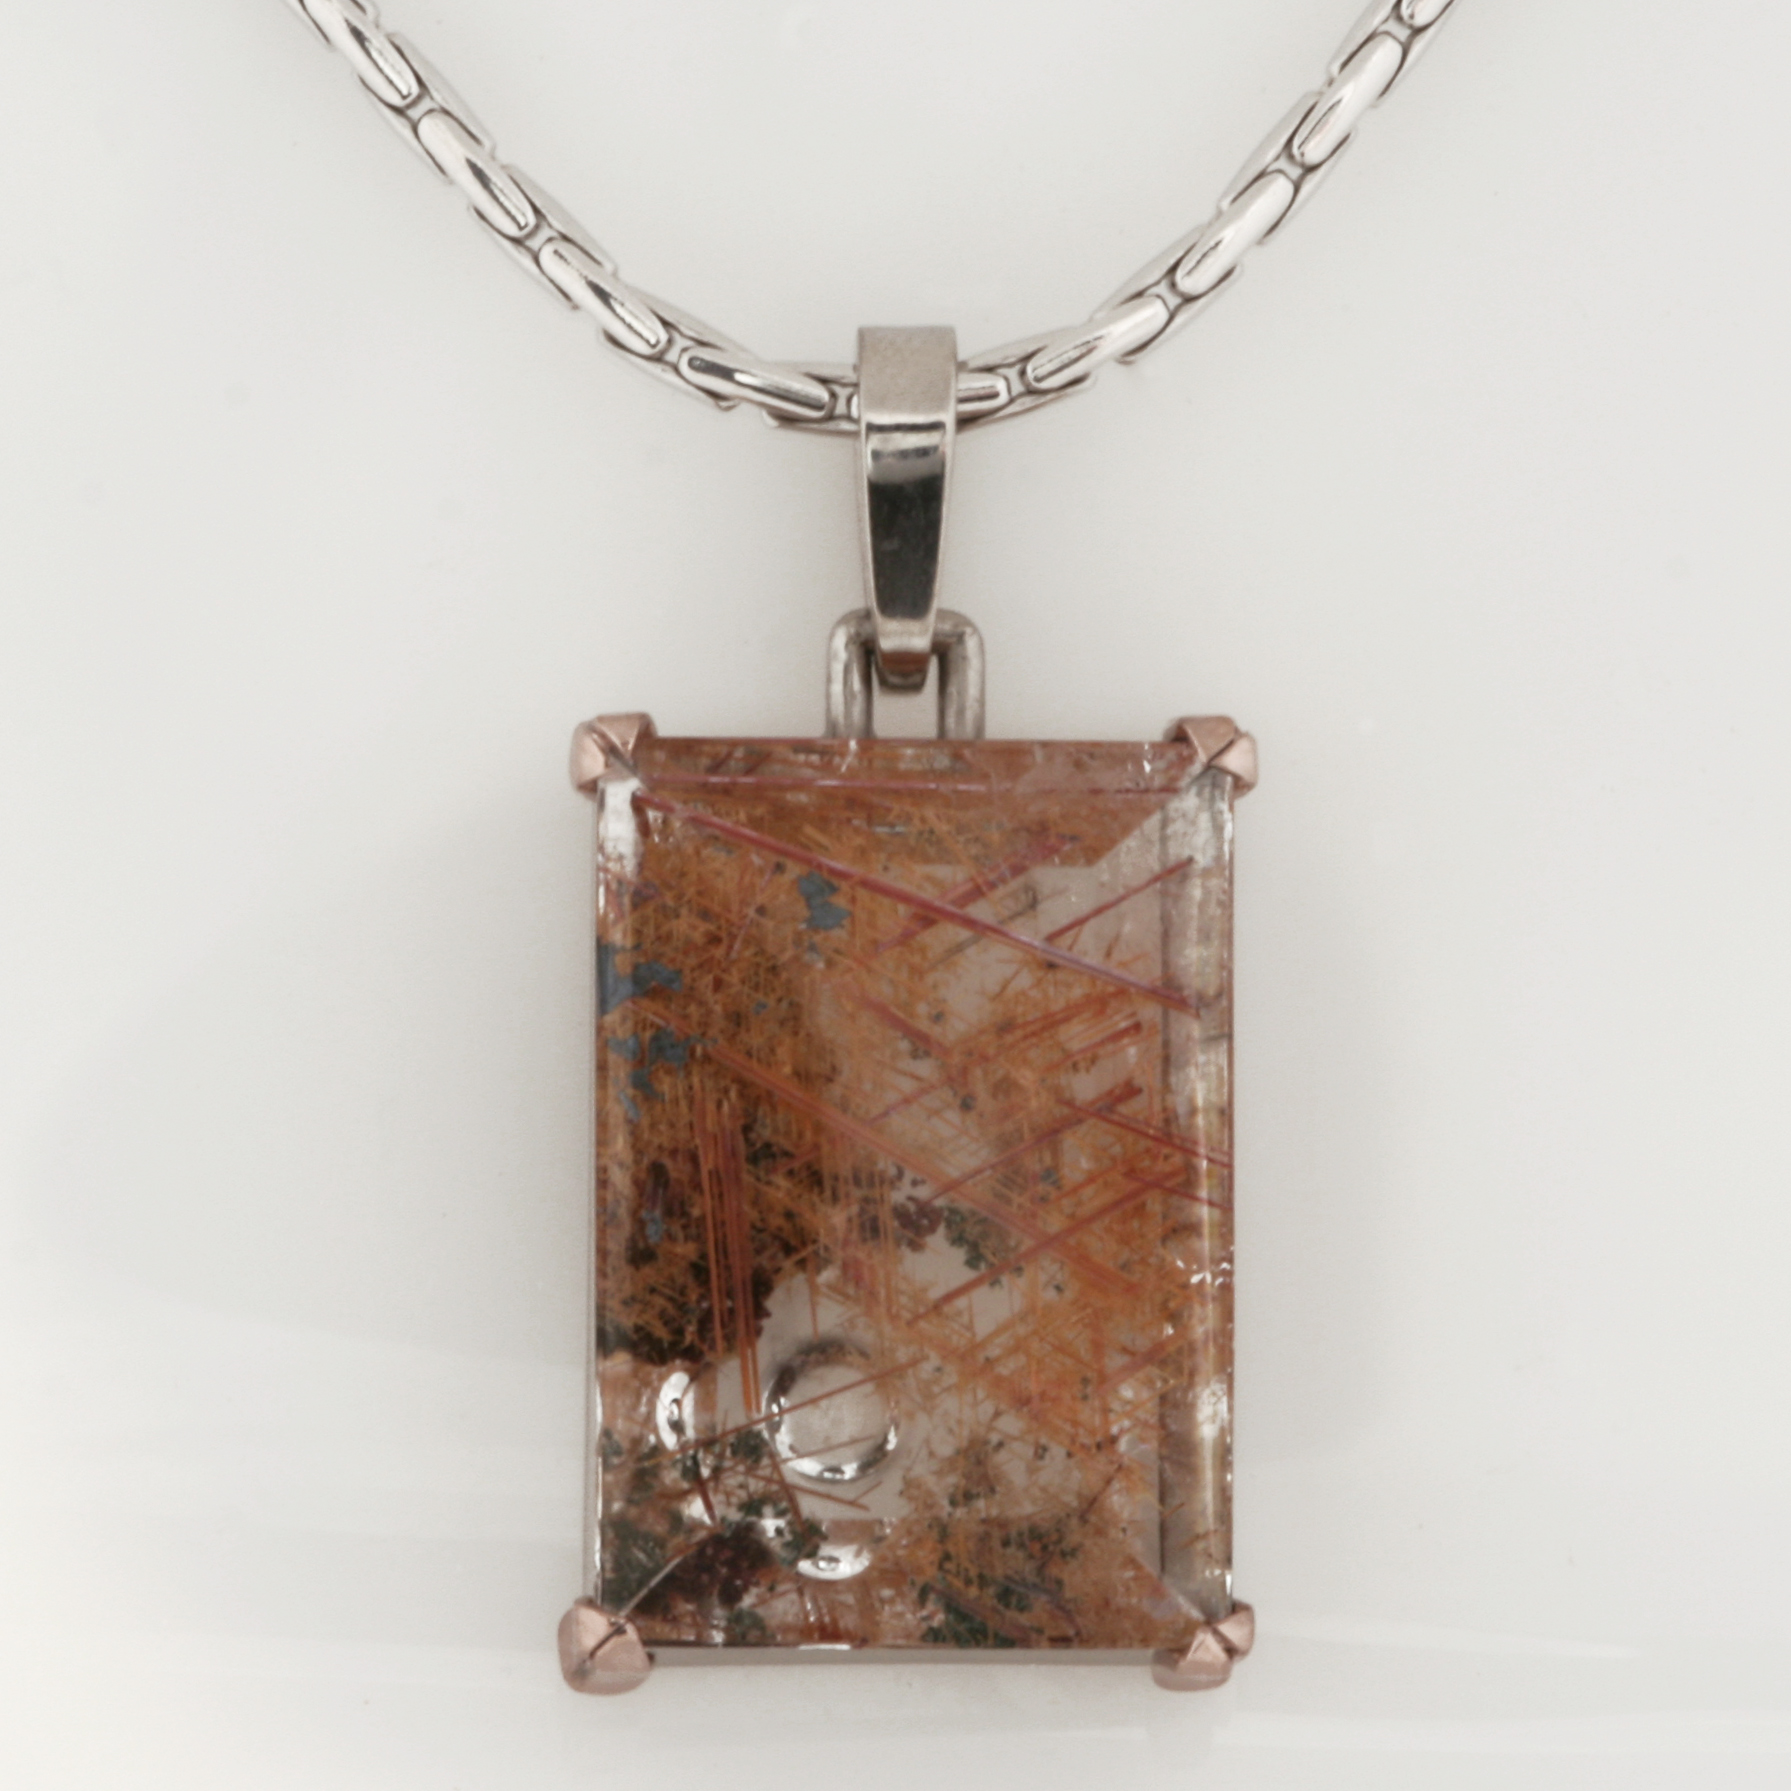 Handmade ladies palladium and 18ct rose gold pendant featuring a Rock Crystal with Rutile